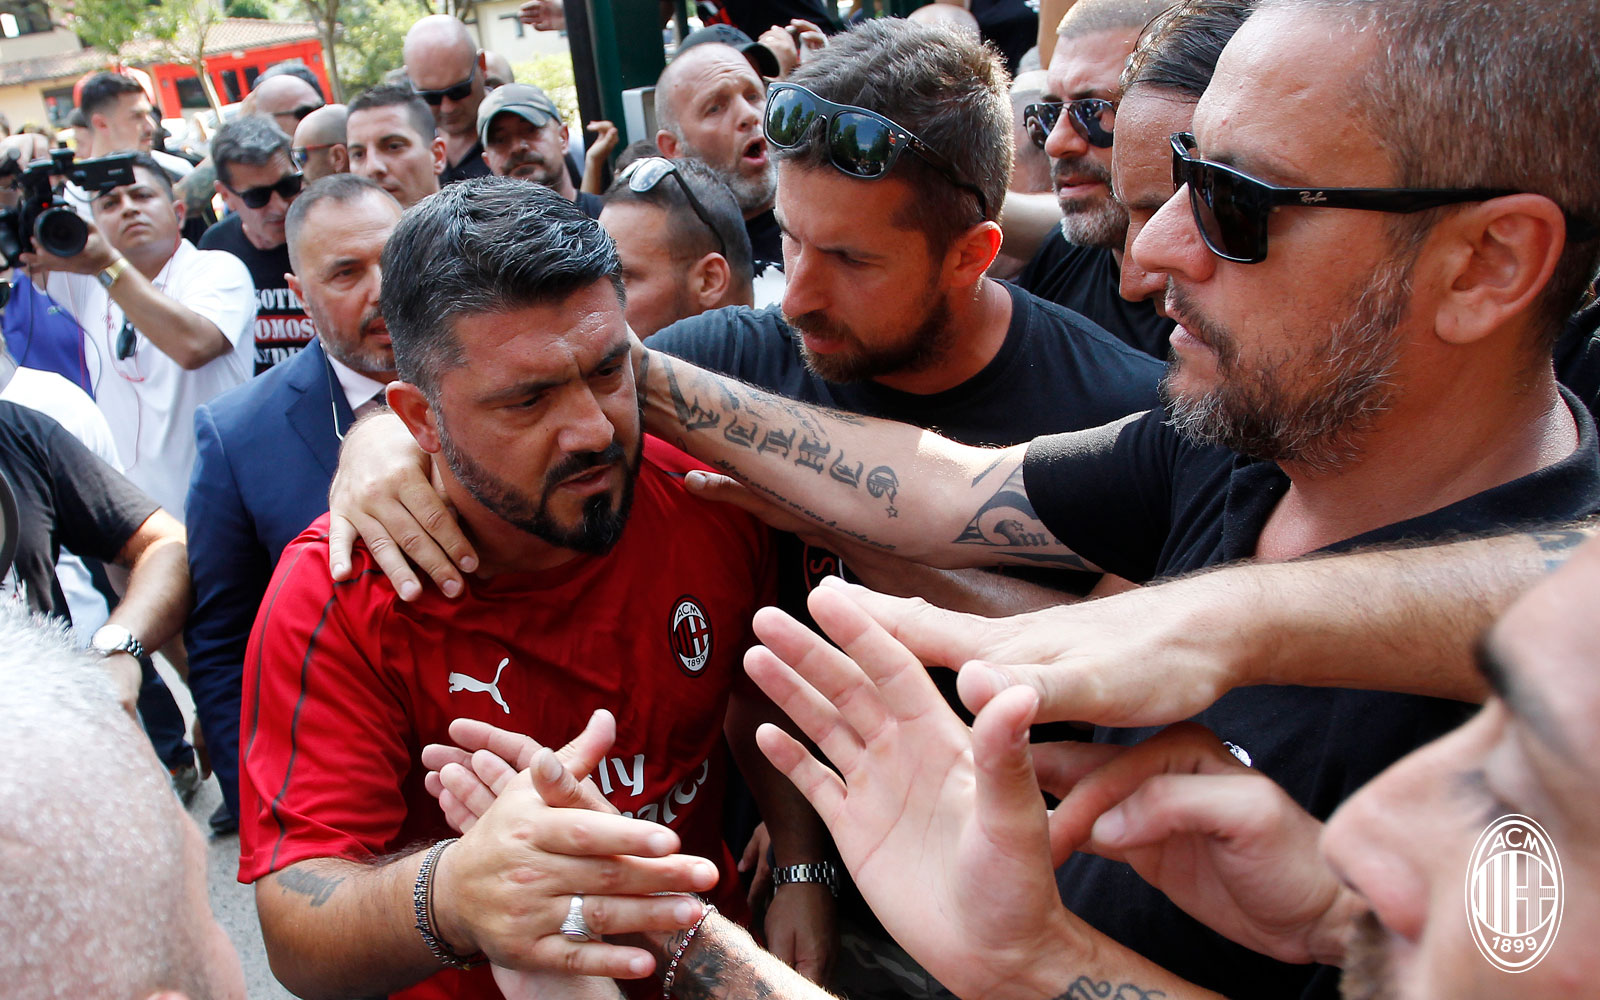 Gennaro Gattuso with fans during training at Milanello on July 9, 2018. (@acmilan.com)